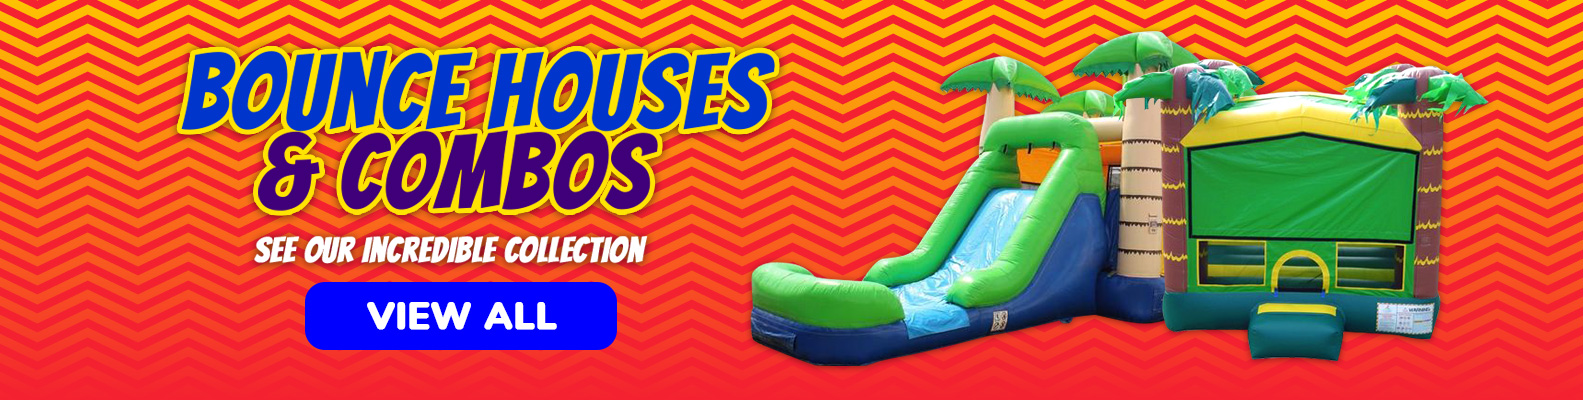 BOUNCE HOUSE RENTALS FORT COLLINS